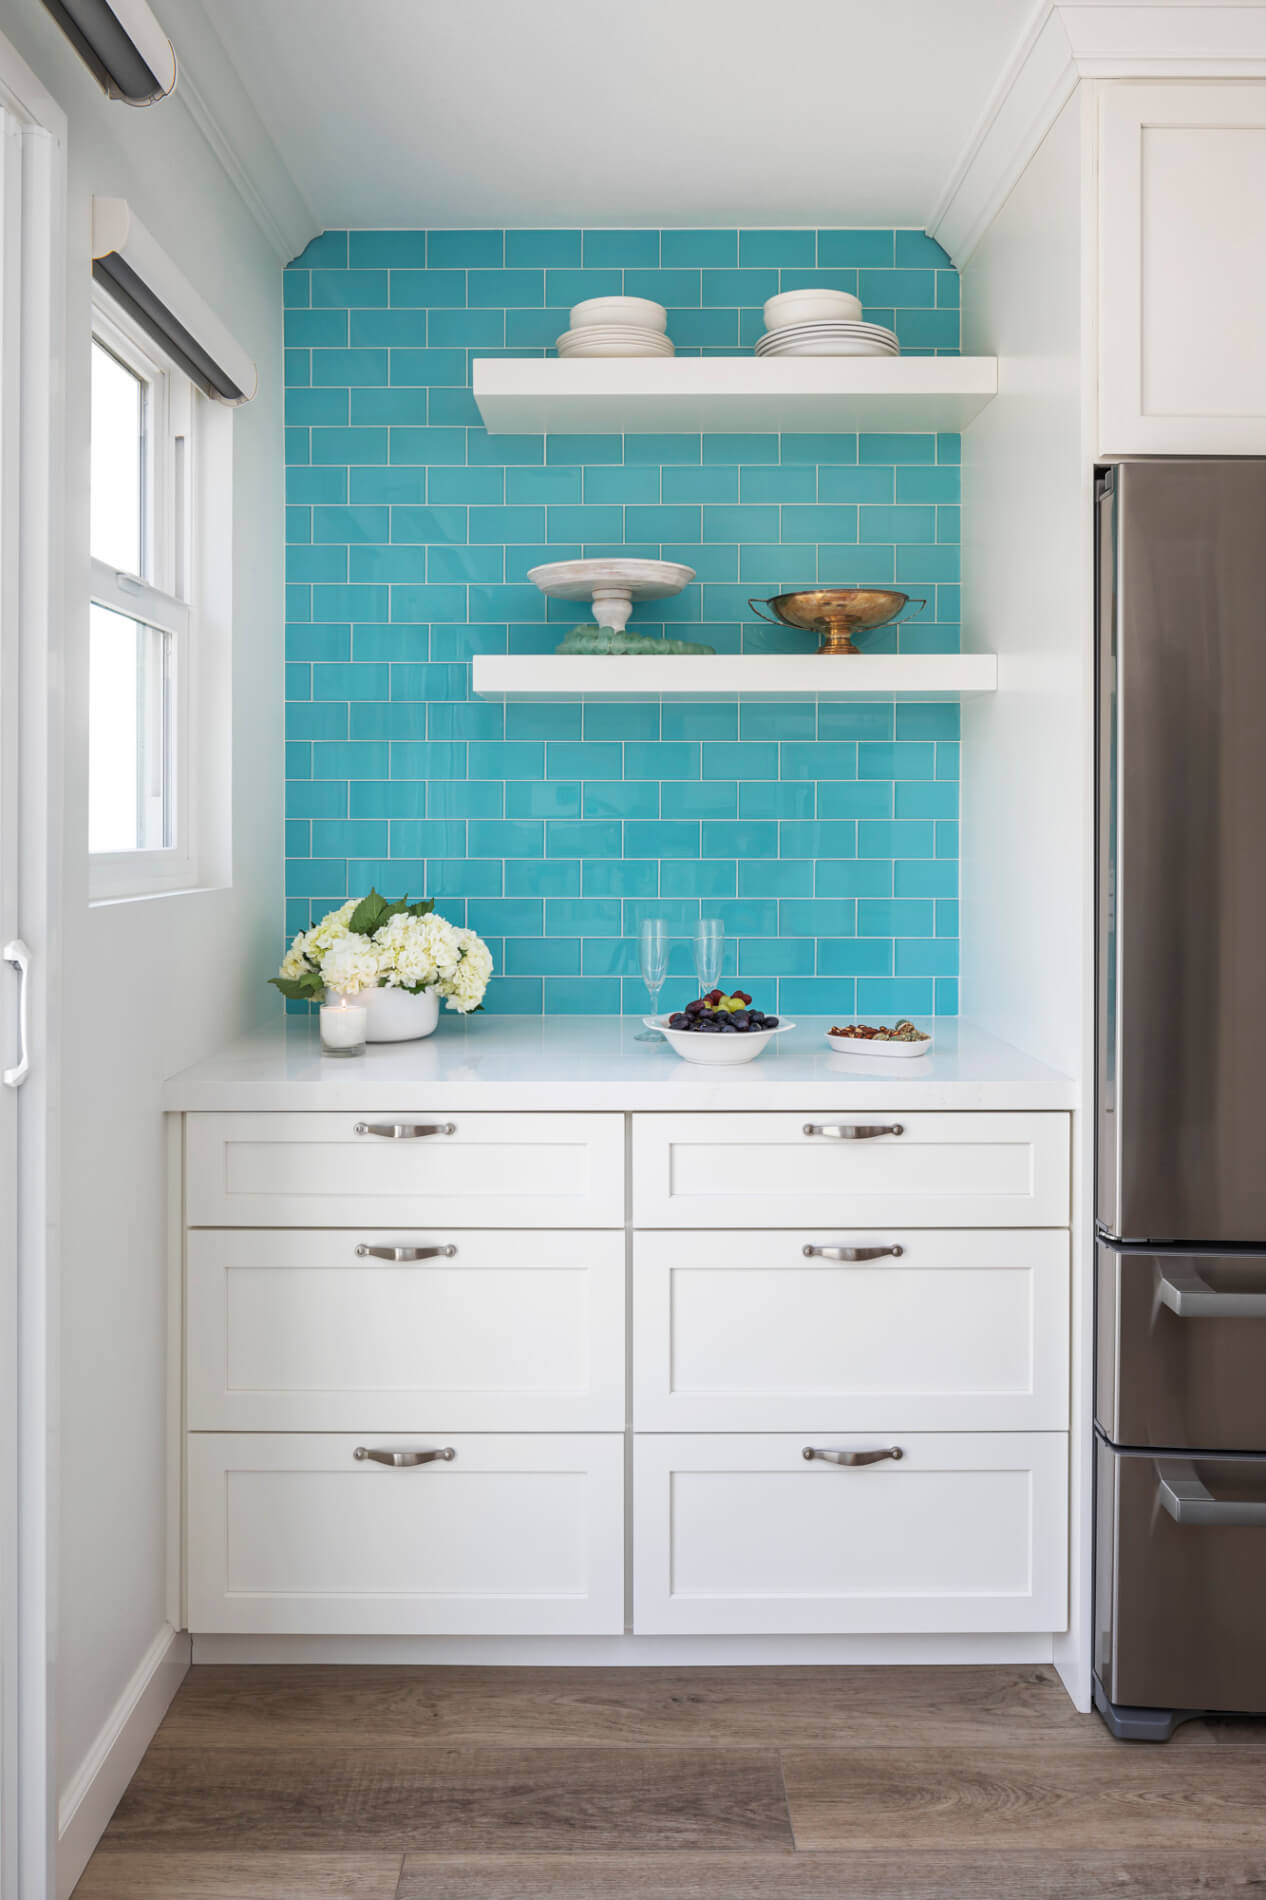 Small white butler's pantry with blue backsplash with silver hardware.